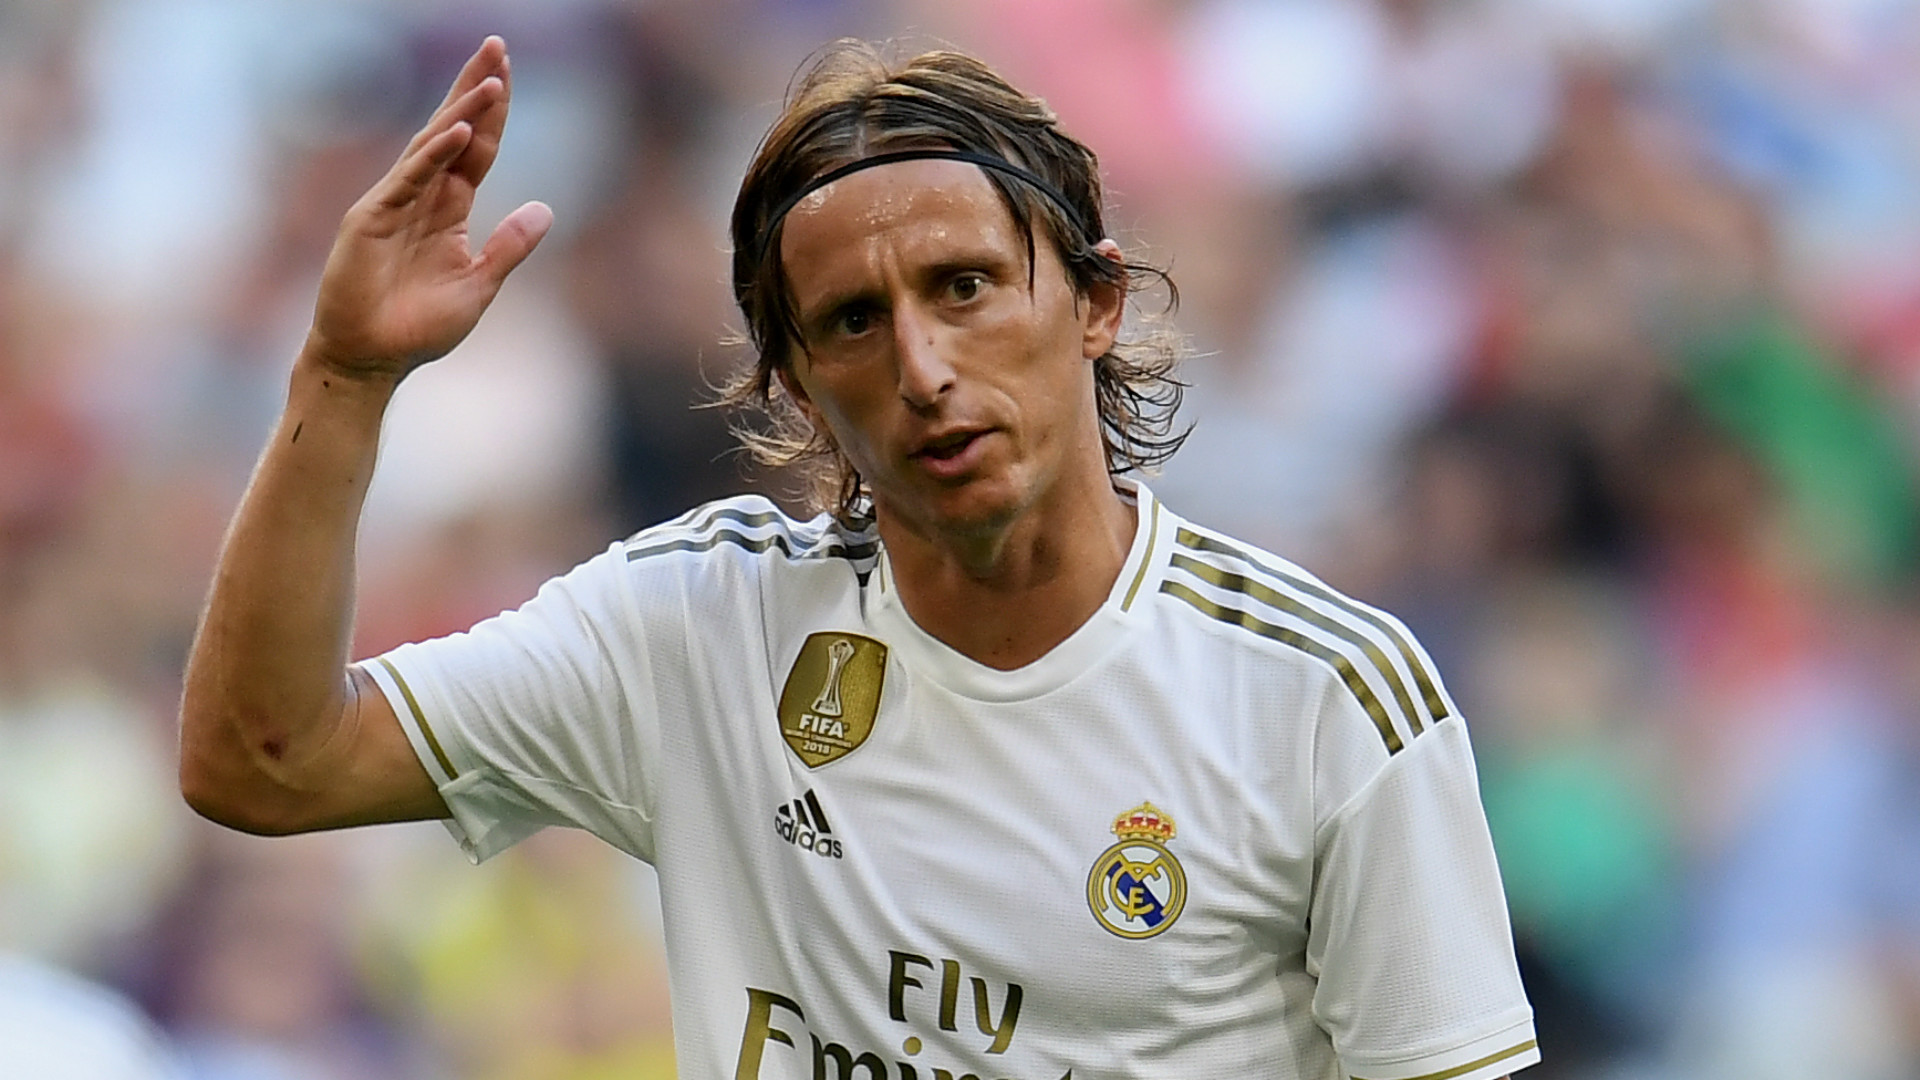 #LaLiga: Modric Thigh Problem Adds To Real Madrid Injury Crisis